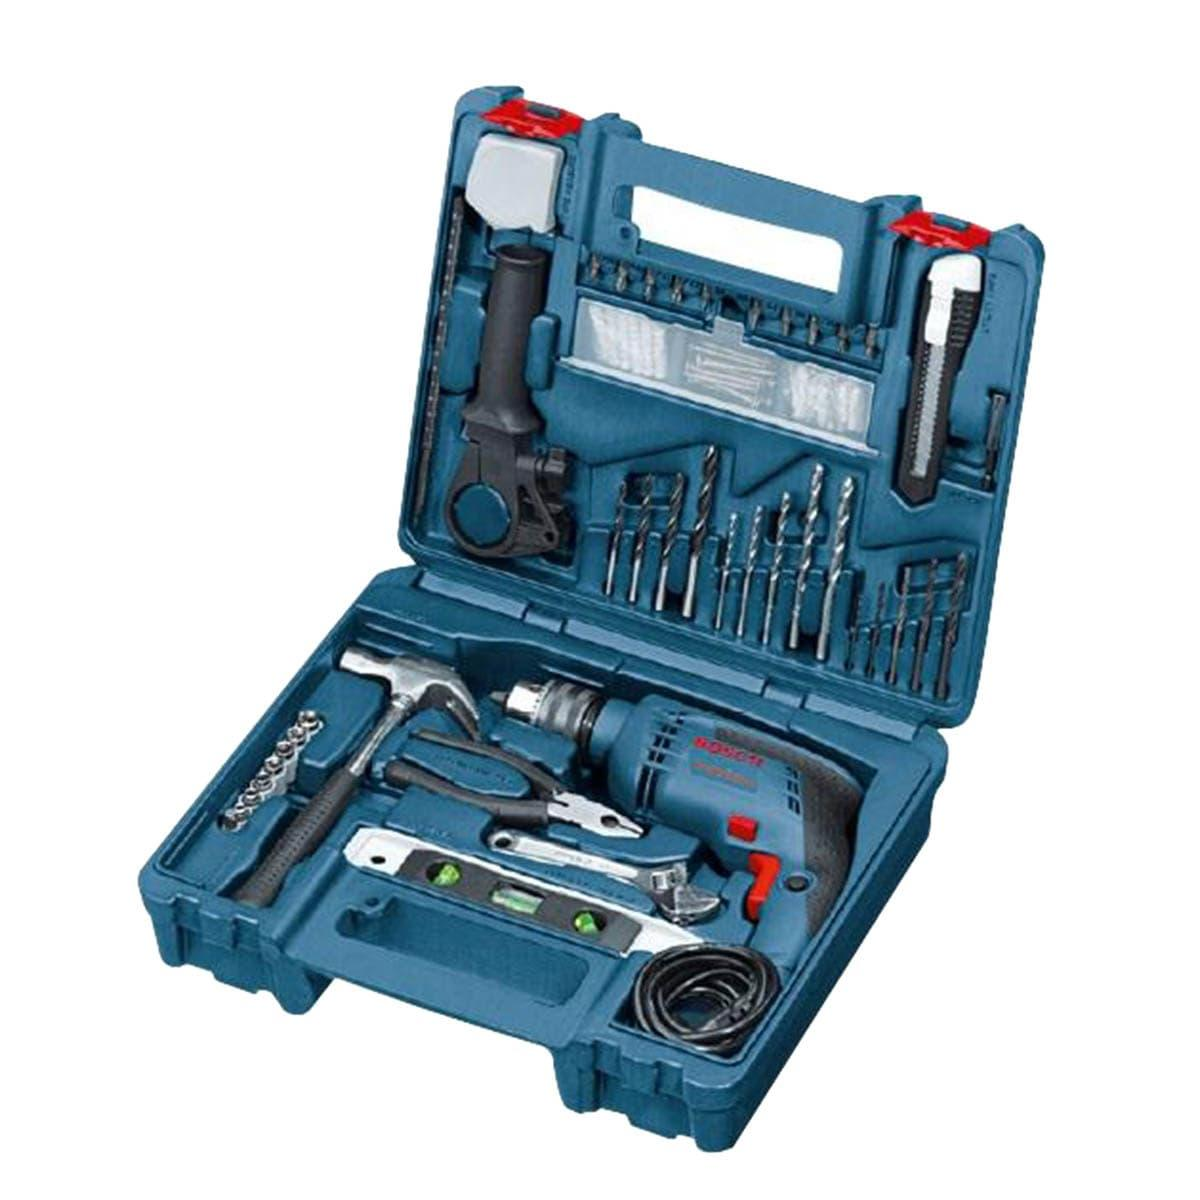 Buy Bosch,Dahua Combo Kits at Best Prices Online in